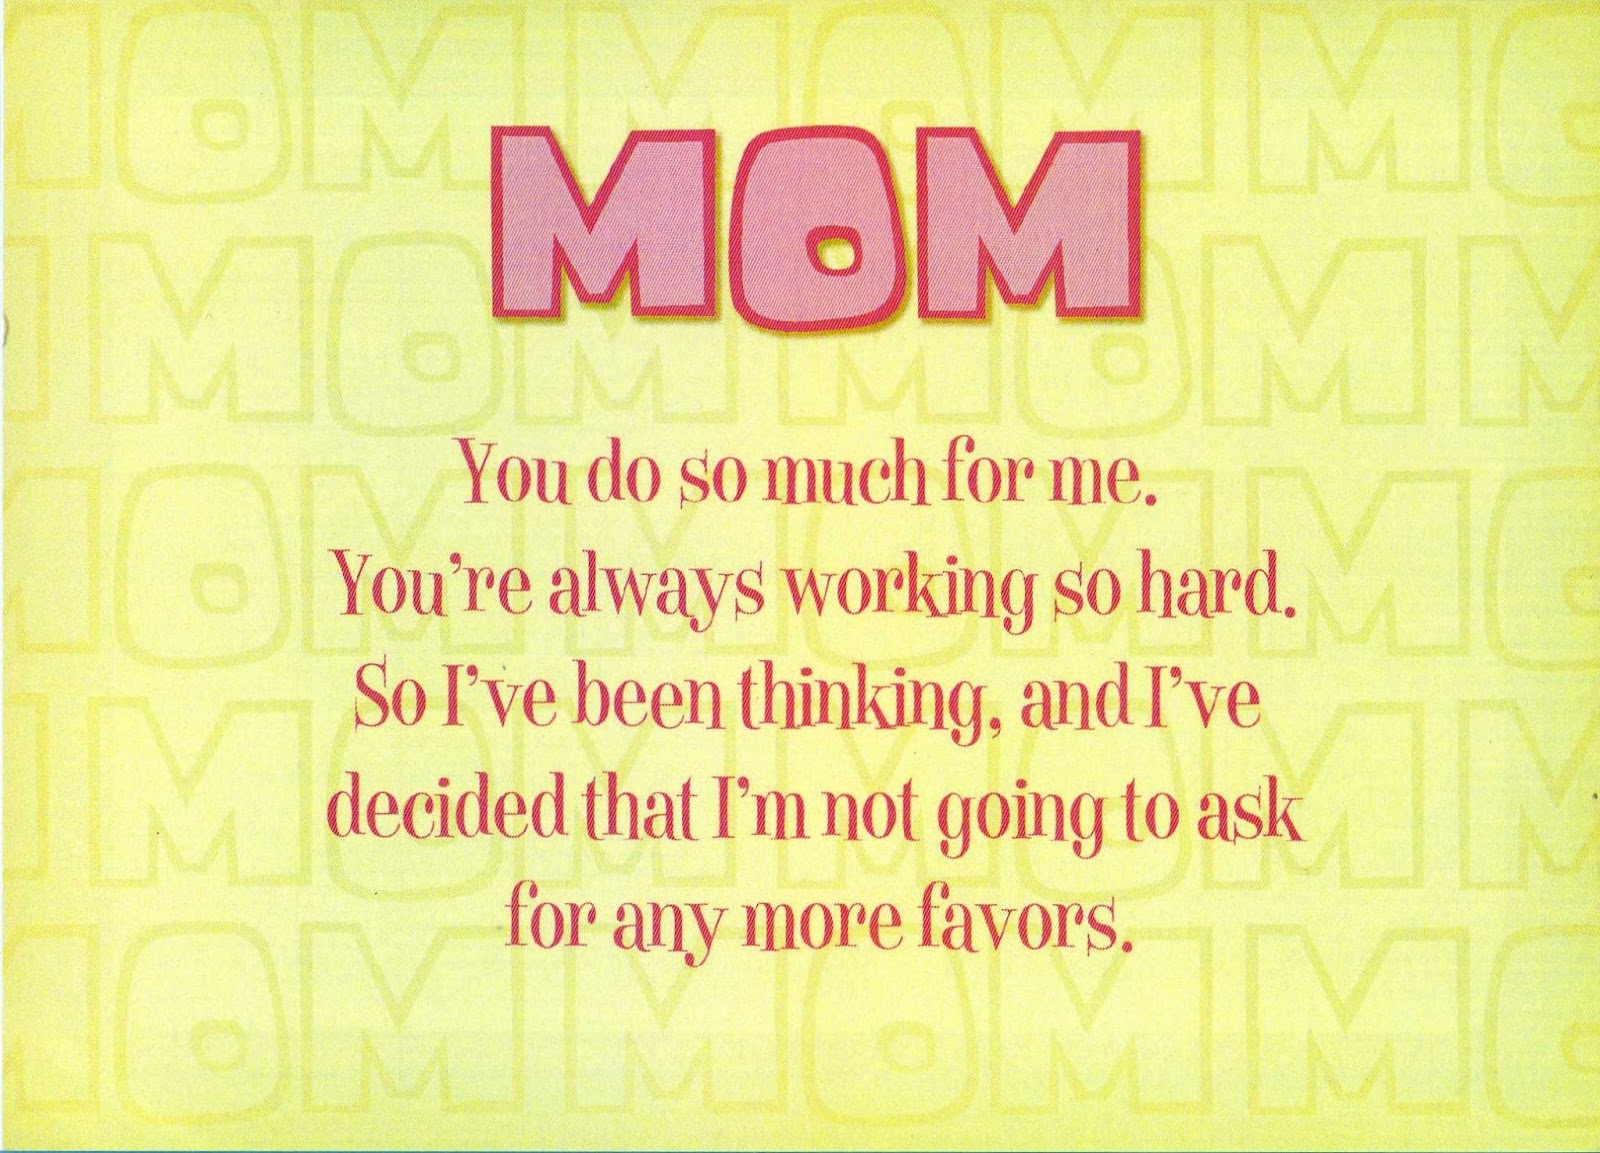 Mothers day 2018 gift ideas sms wishes messages quotes images happy mothers day 2017 card sayings message ideas what to write on mothers day bookmarktalkfo Image collections